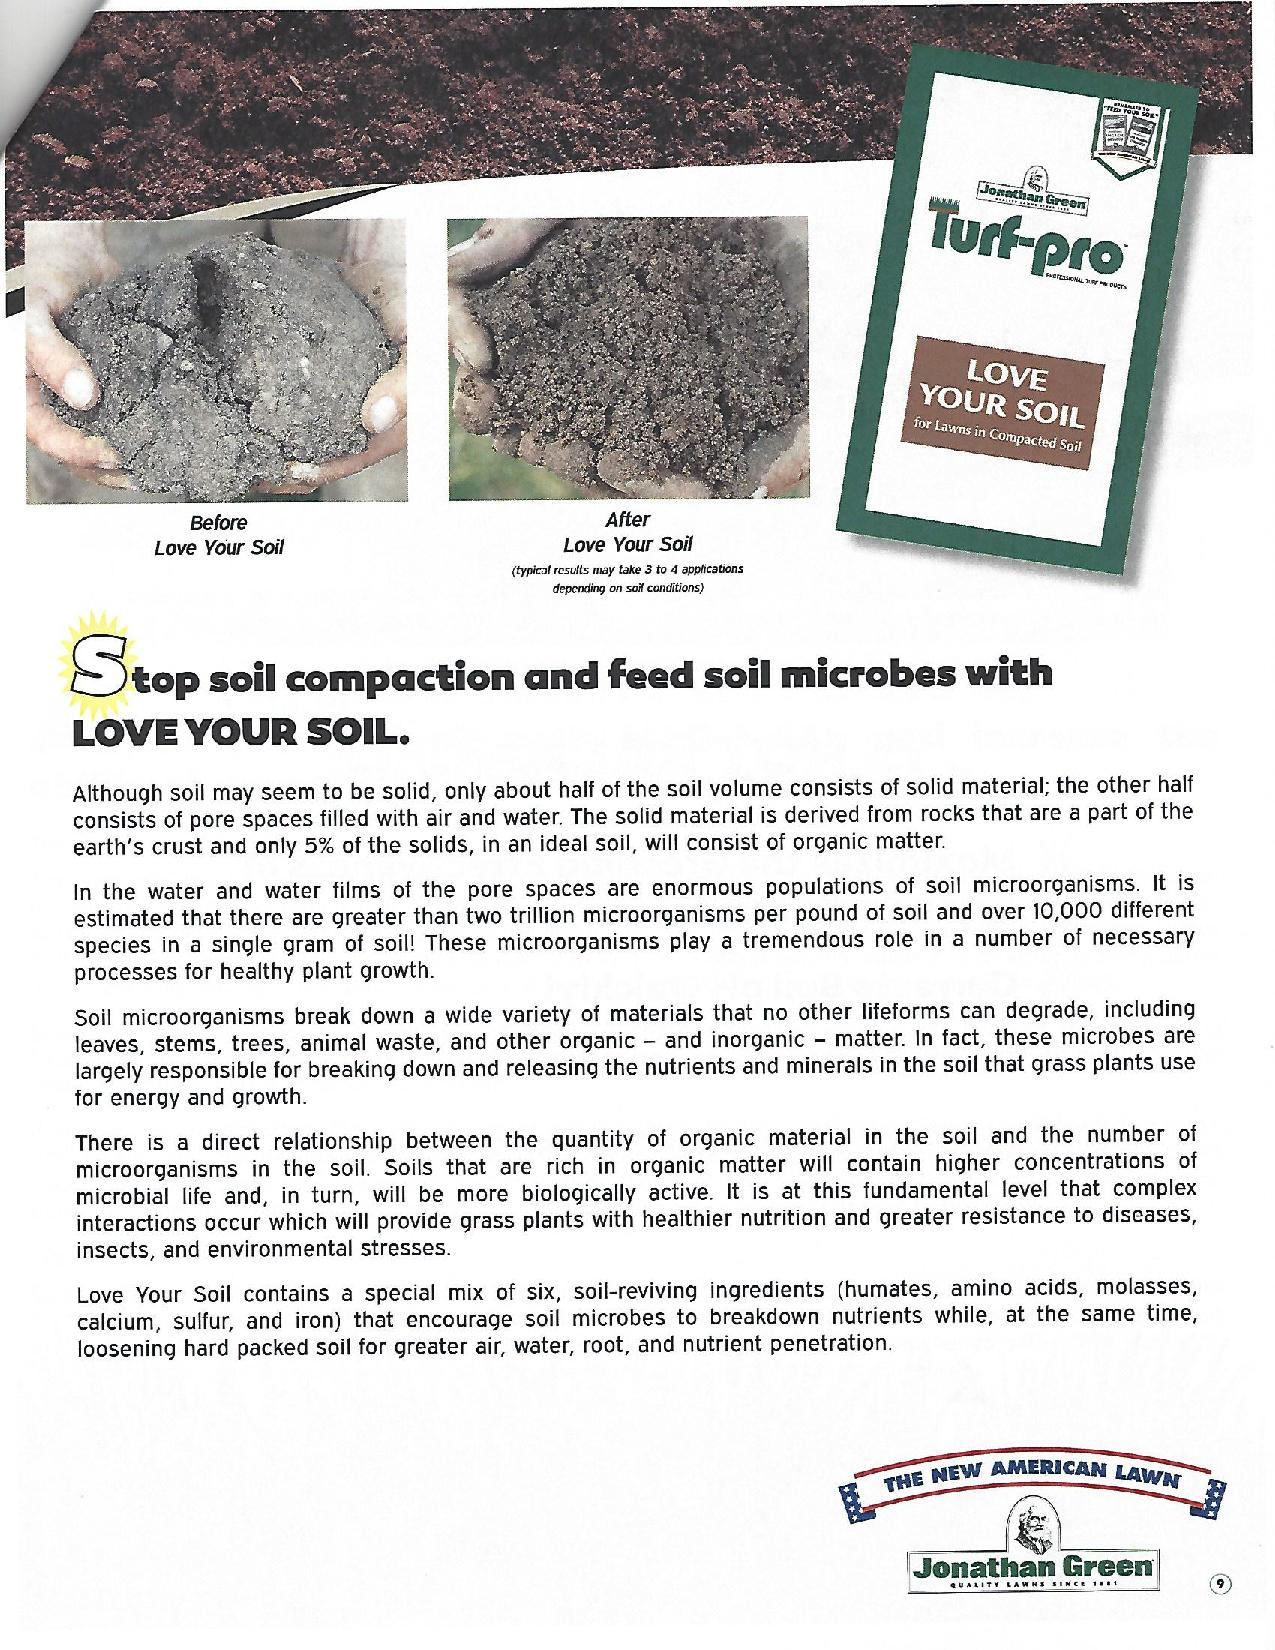 Love Your Soil